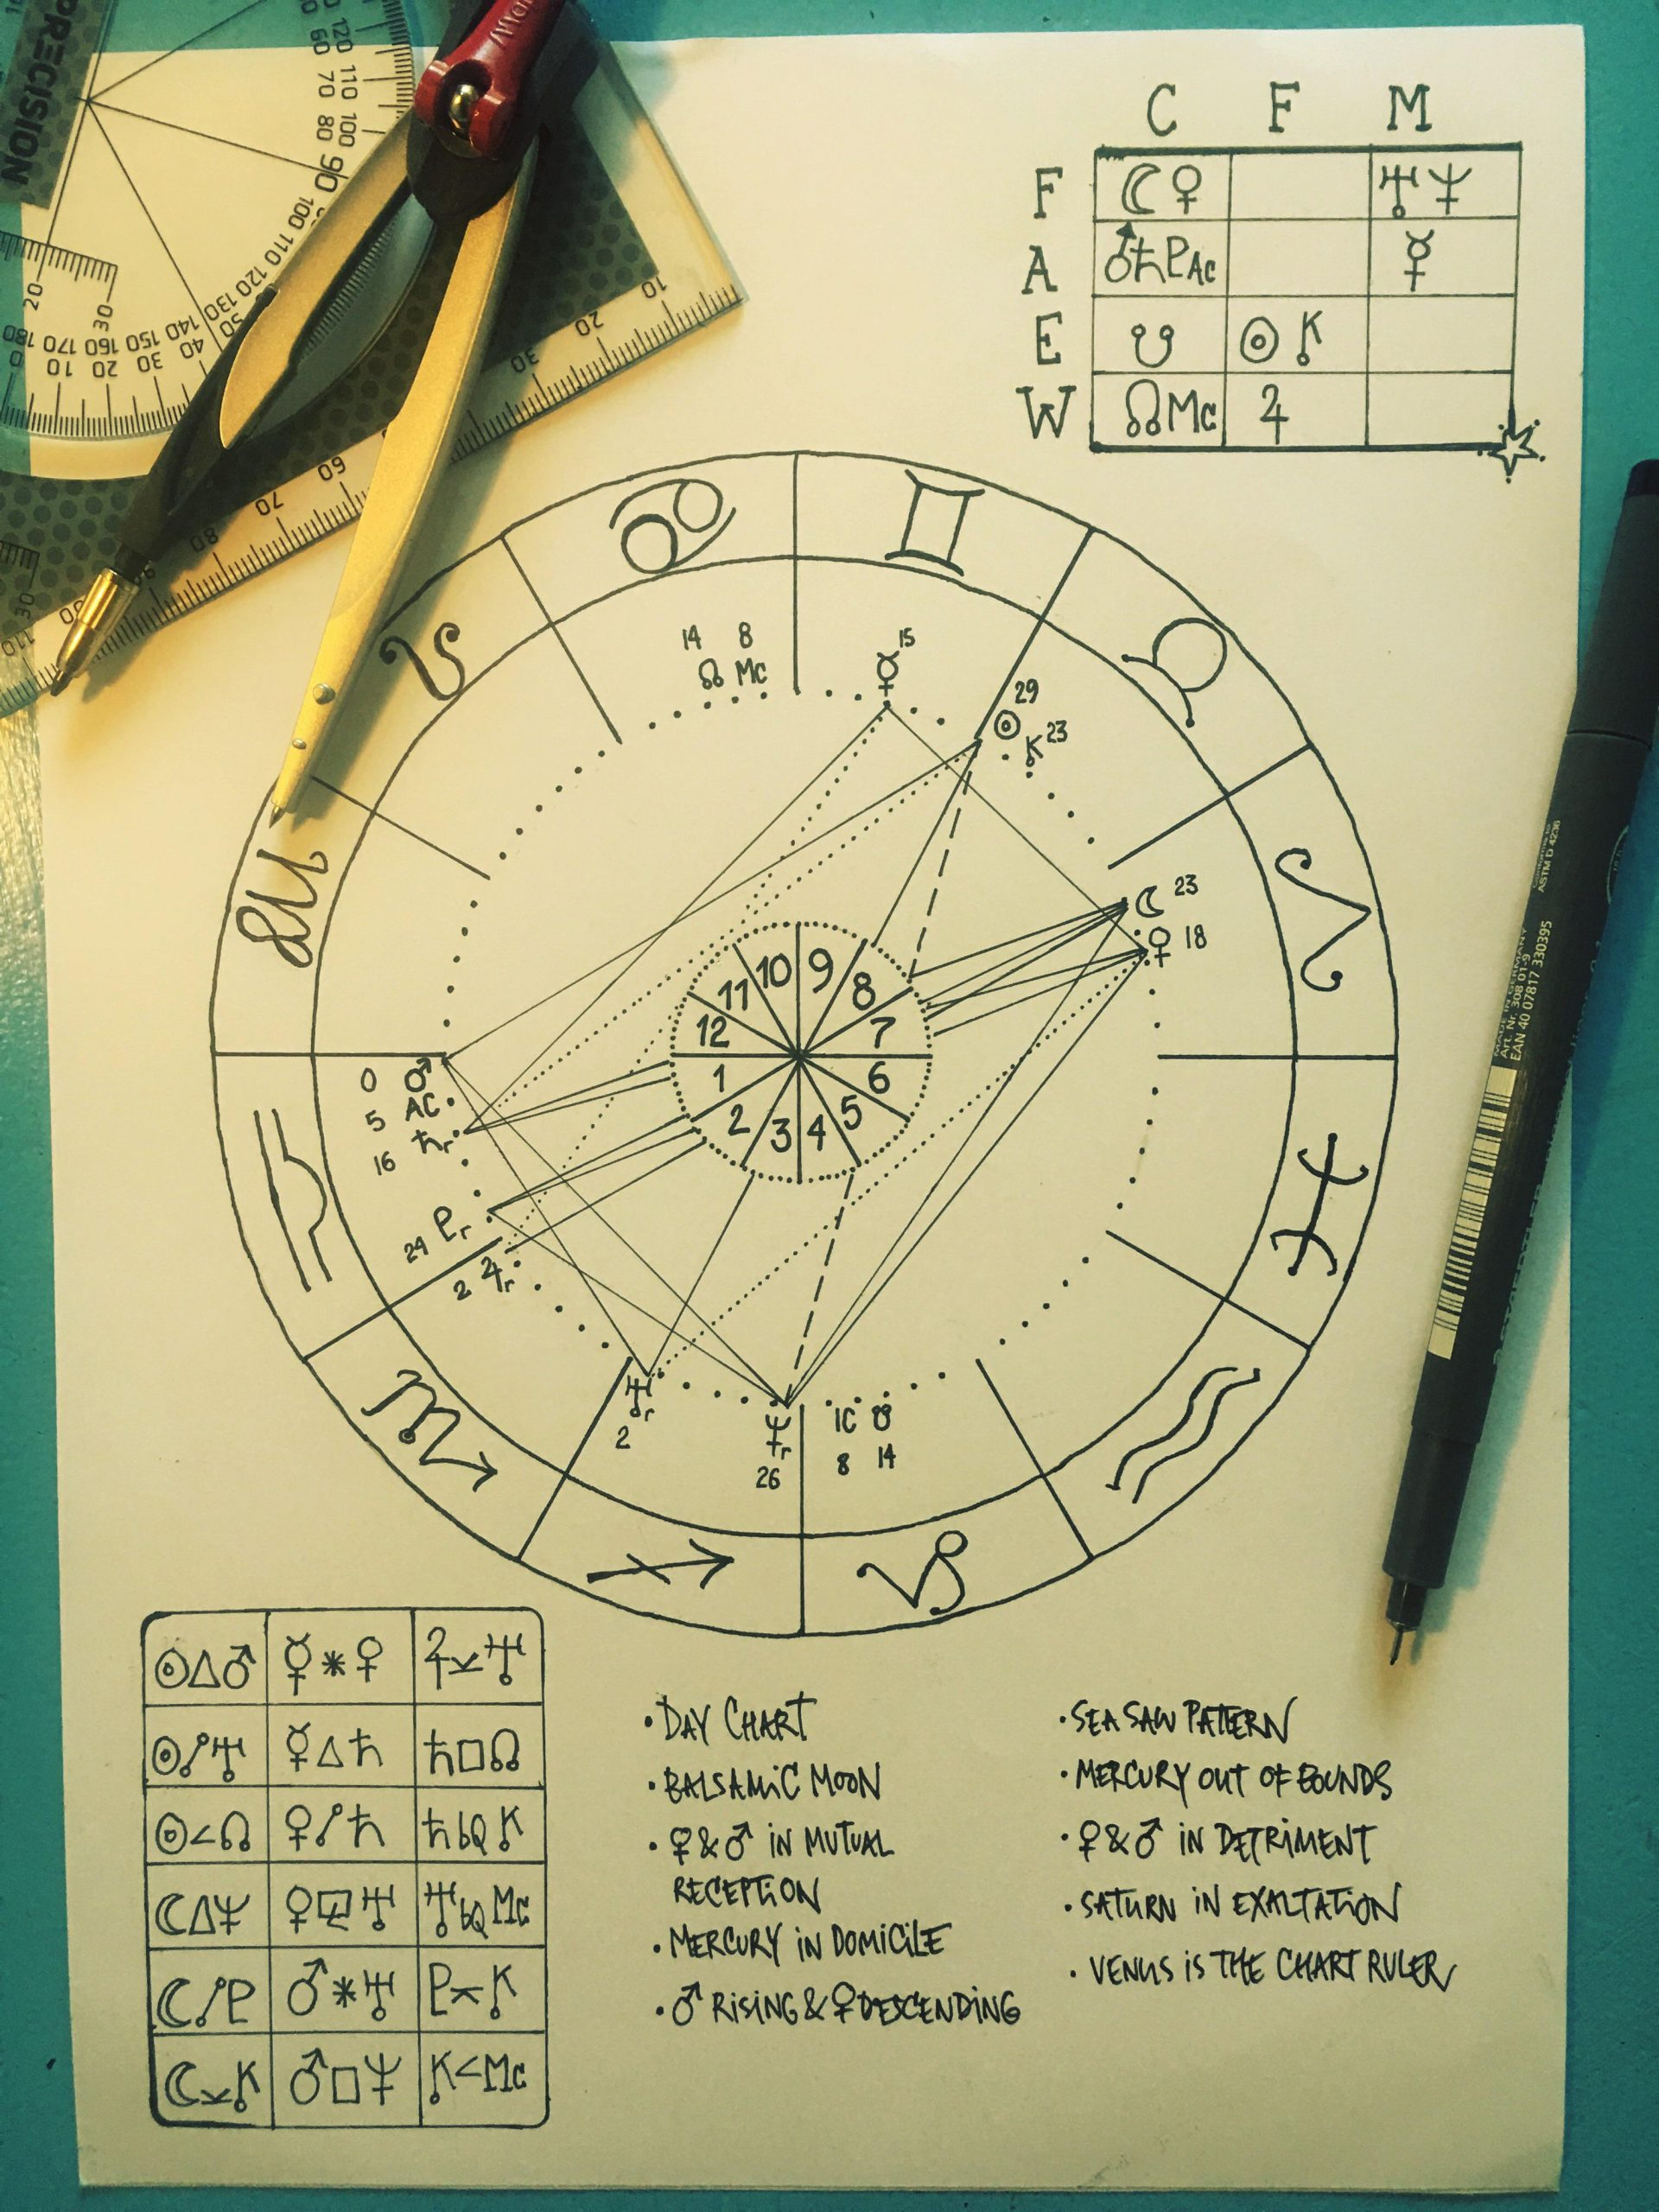 This is not a post about this chart or any comments about it, its purely a recommendation of drawing your own chart in hand. As a beginner it gave me a much better understanding of a chart and aspects and I saw it from a new perspective Try it, its easy and very calming .